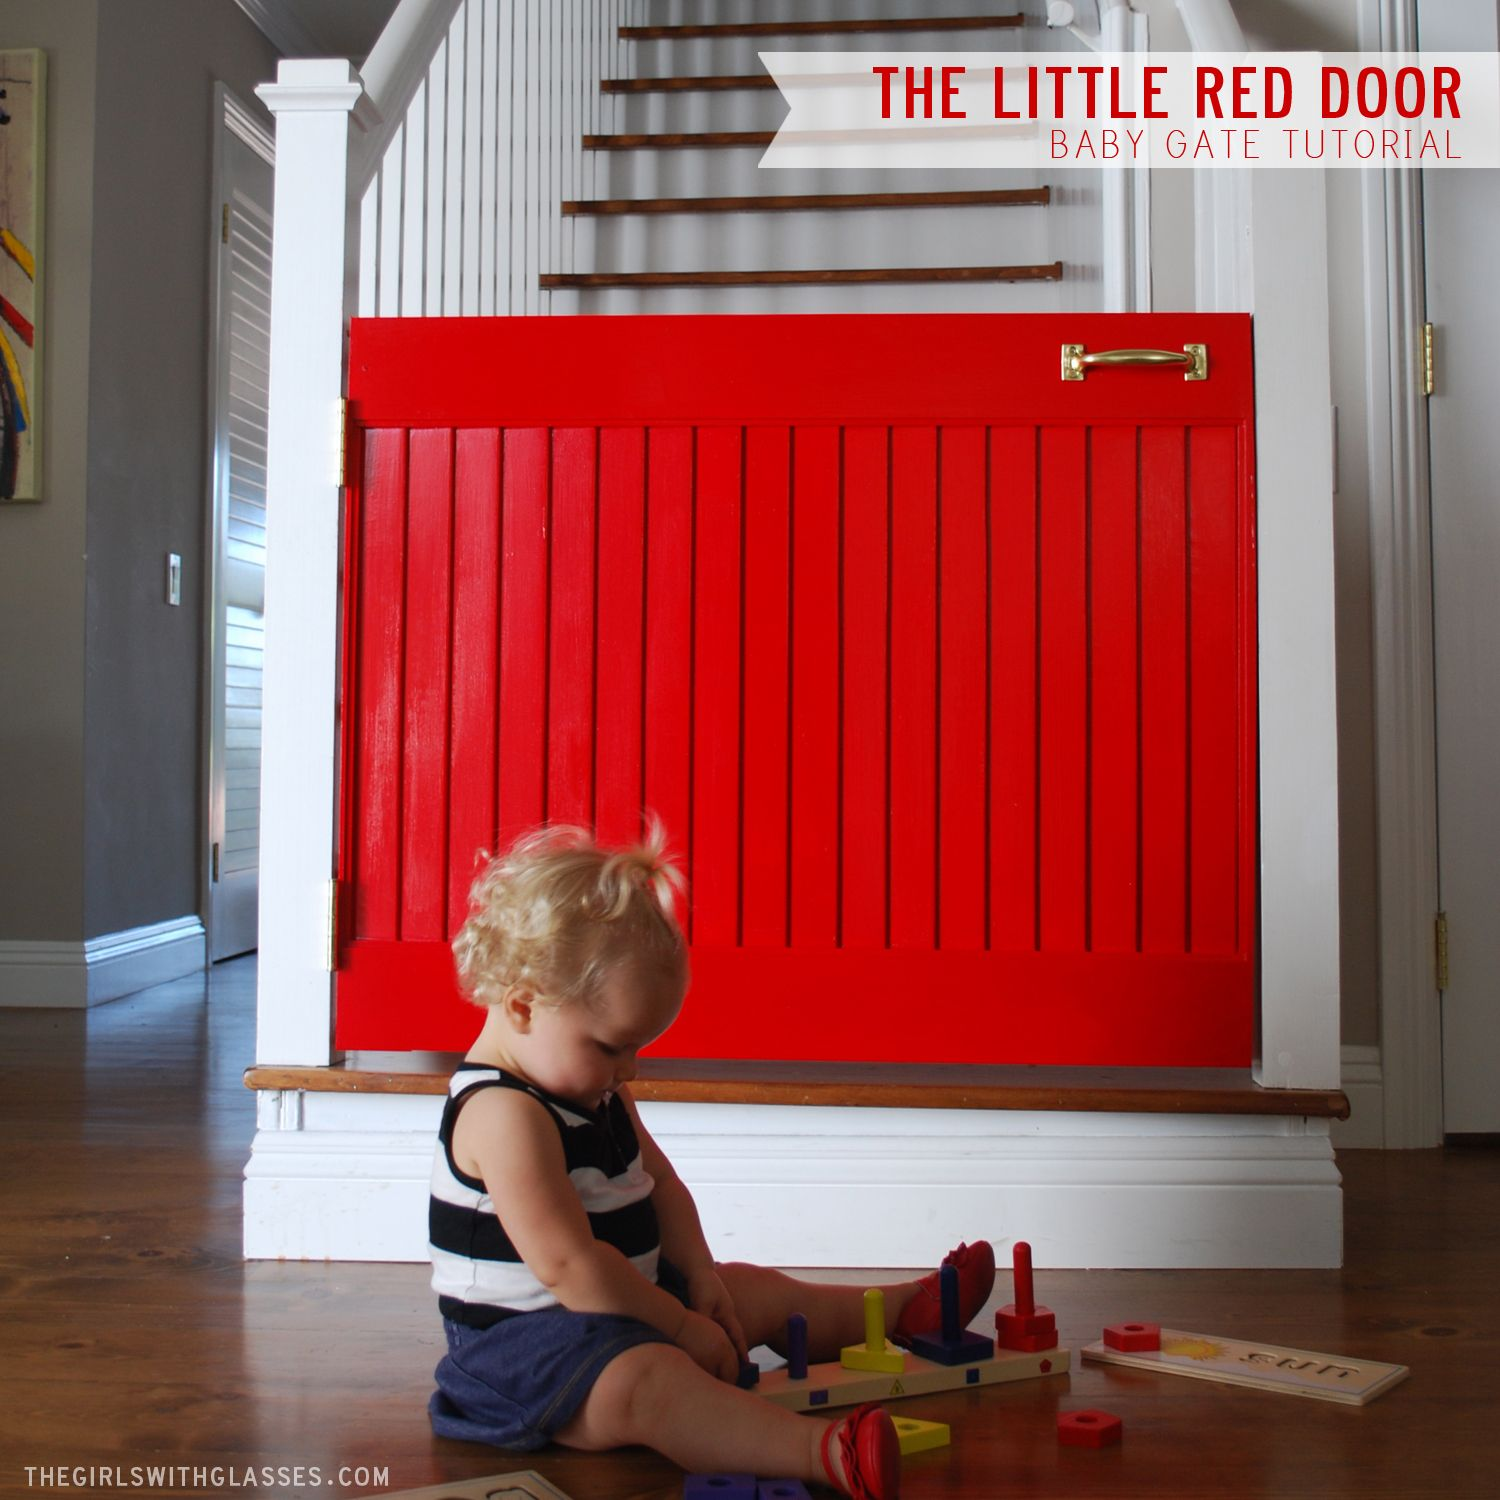 LITTLE RED DOOR: BABY GATE TUTORIAL. I Put Together A Step By Step Tutorial